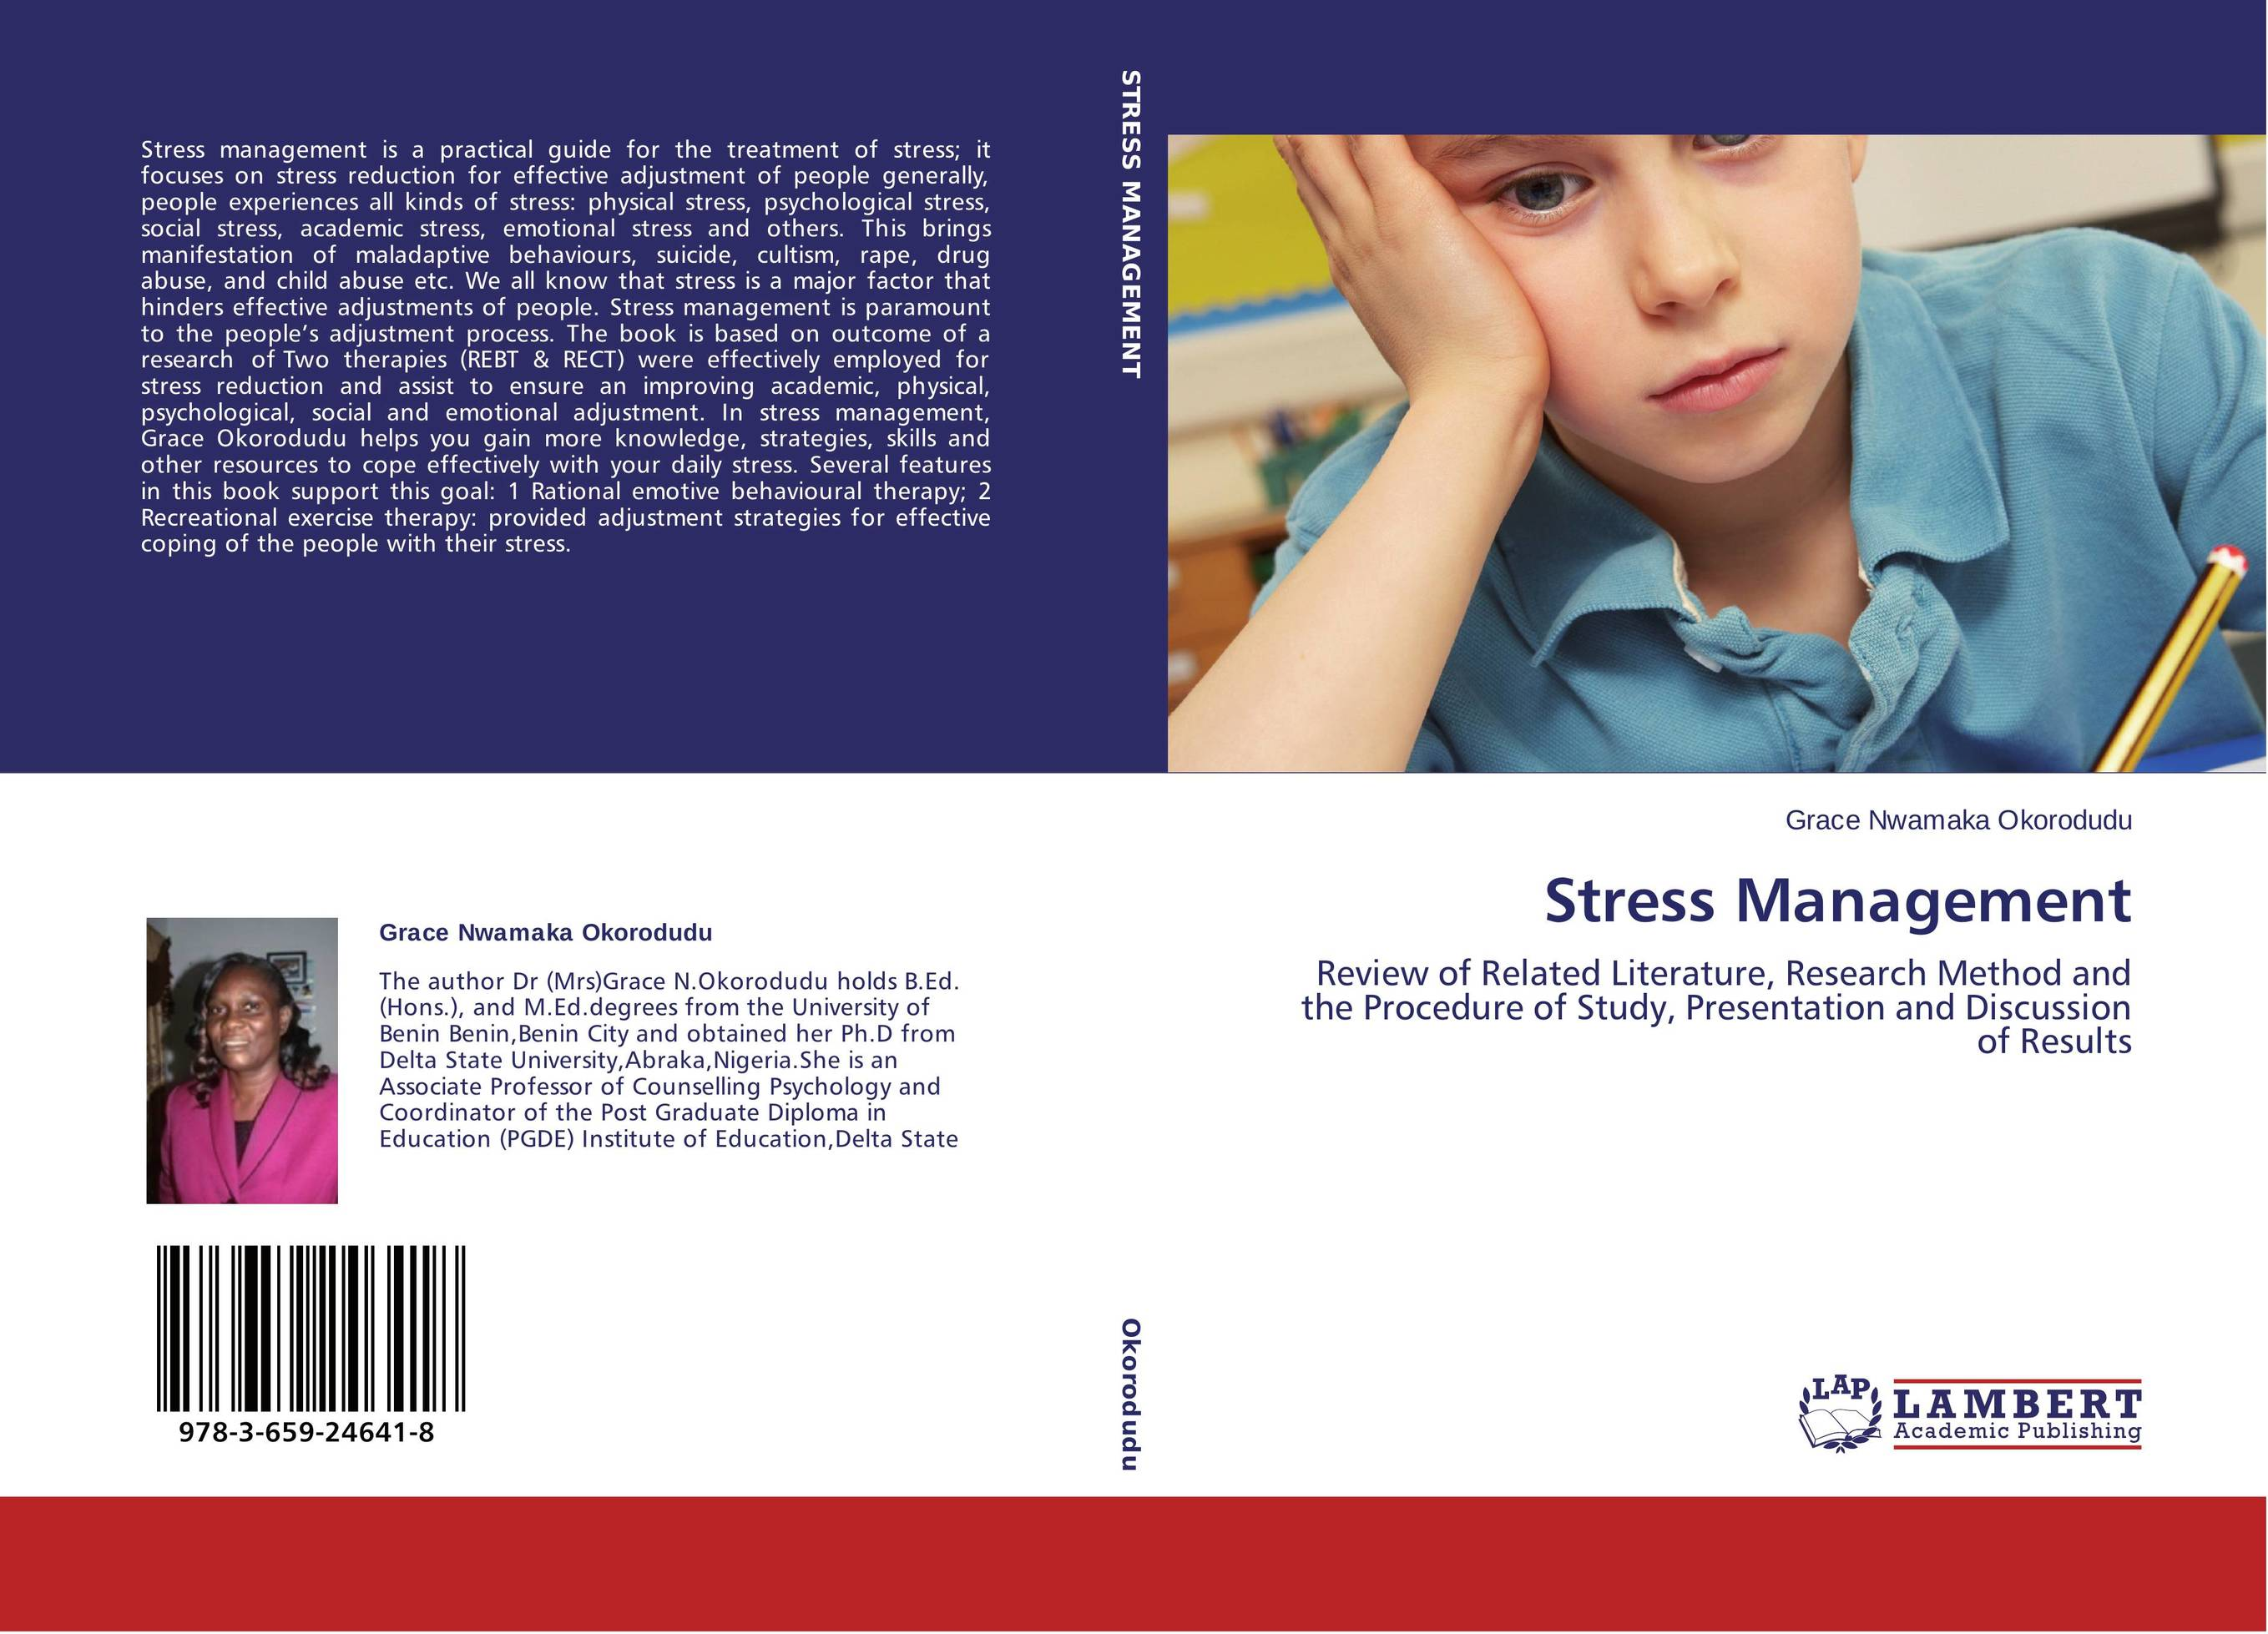 review of related literature on stress management Lewis, anthony, thomas, brychan c and williams, k (2011) a literature review of stress management international journal of professional management, 5 (3) pp 1-7 issn 2042-2341 full text not available from this repository.